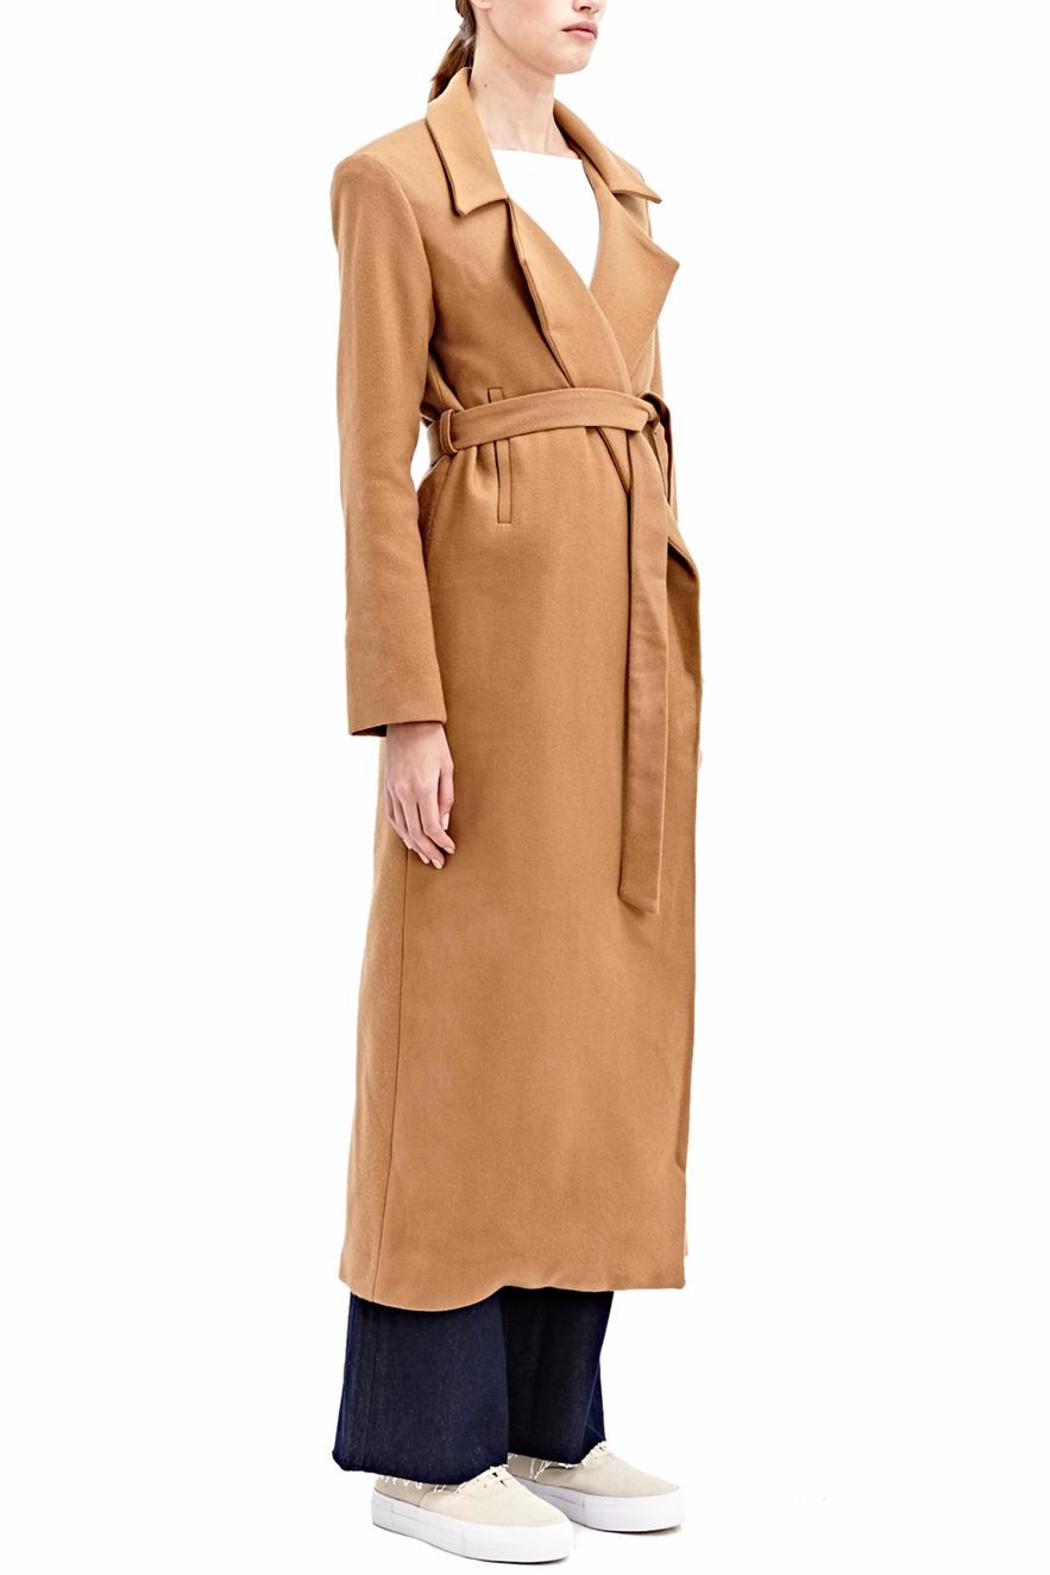 Charlie May Duster Jacket - Side Cropped Image